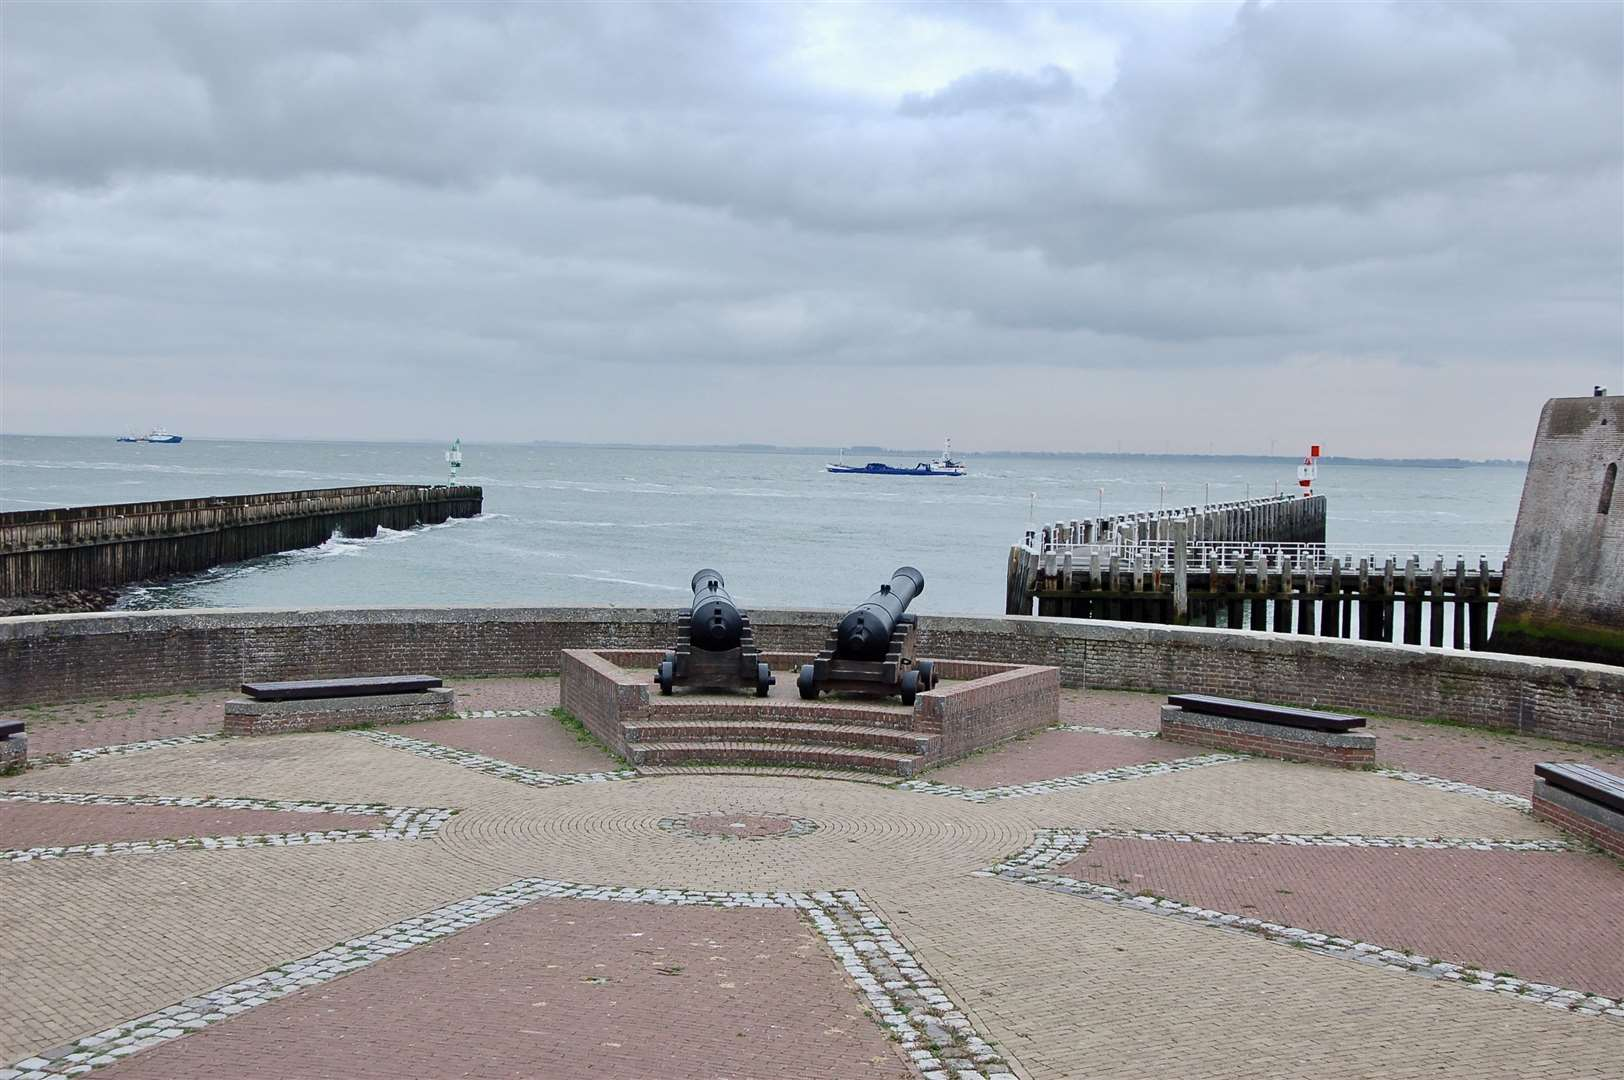 Old cannons still guard the harbour entrance as ships pass going to Antwerp.